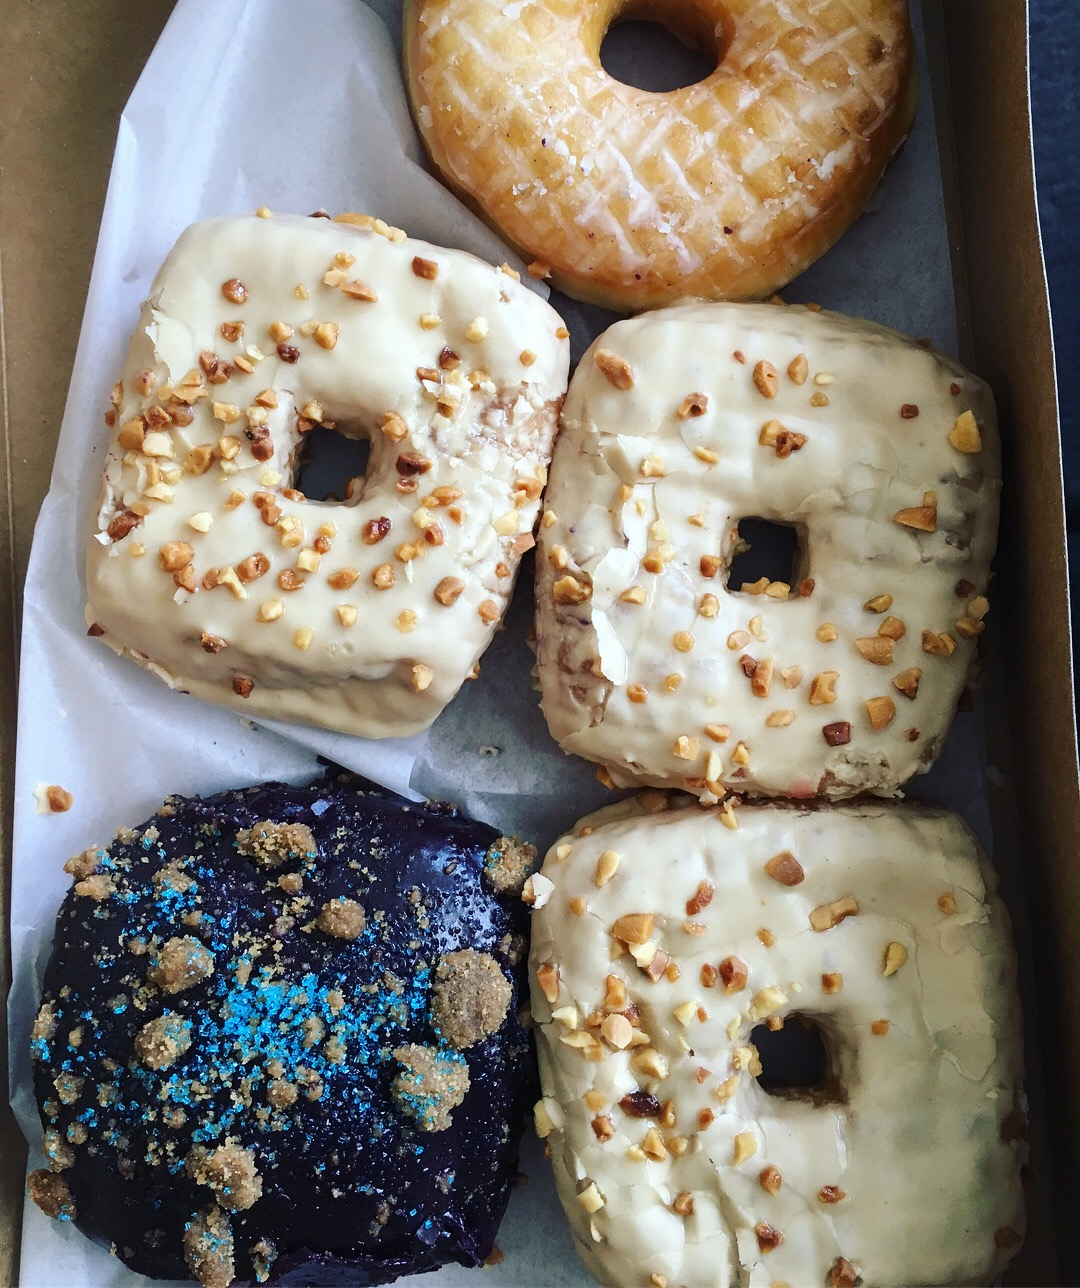 How to Eat Donuts and Still Lose Weight